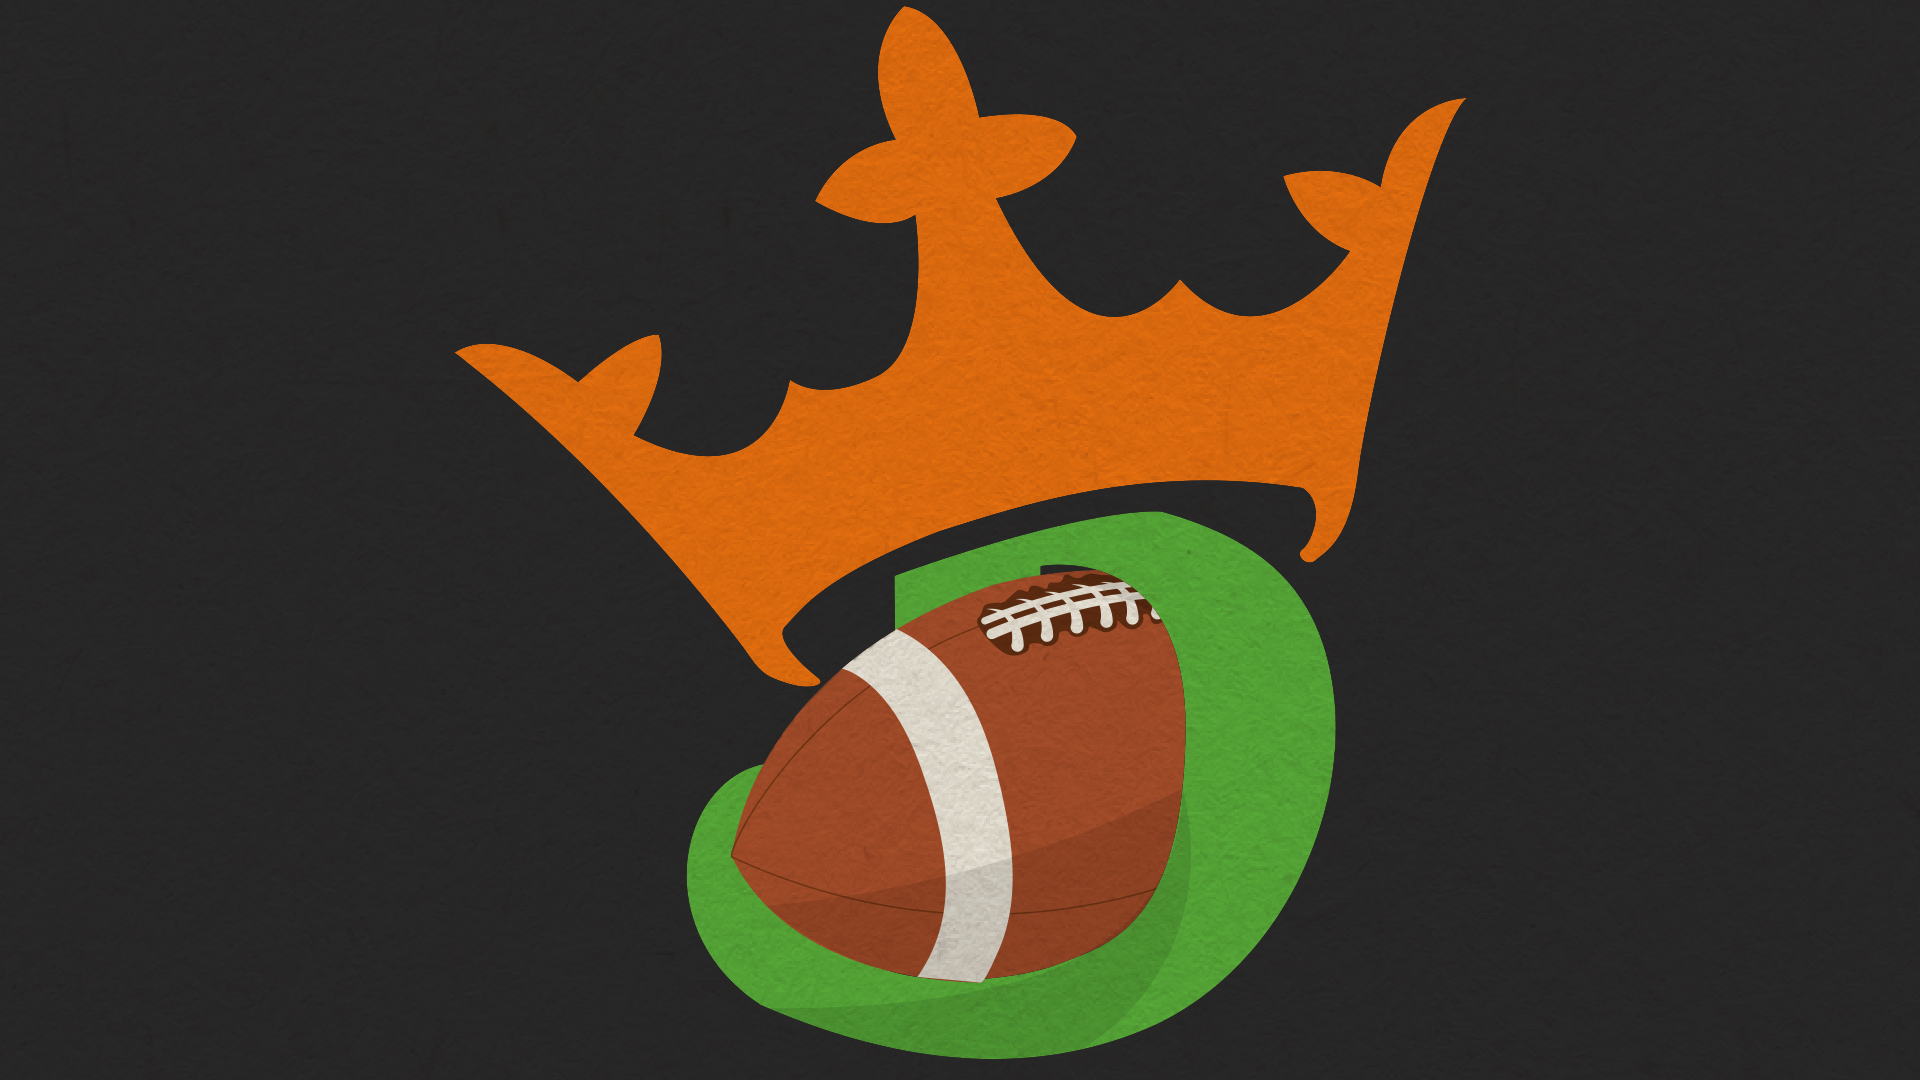 a football with an orange crown